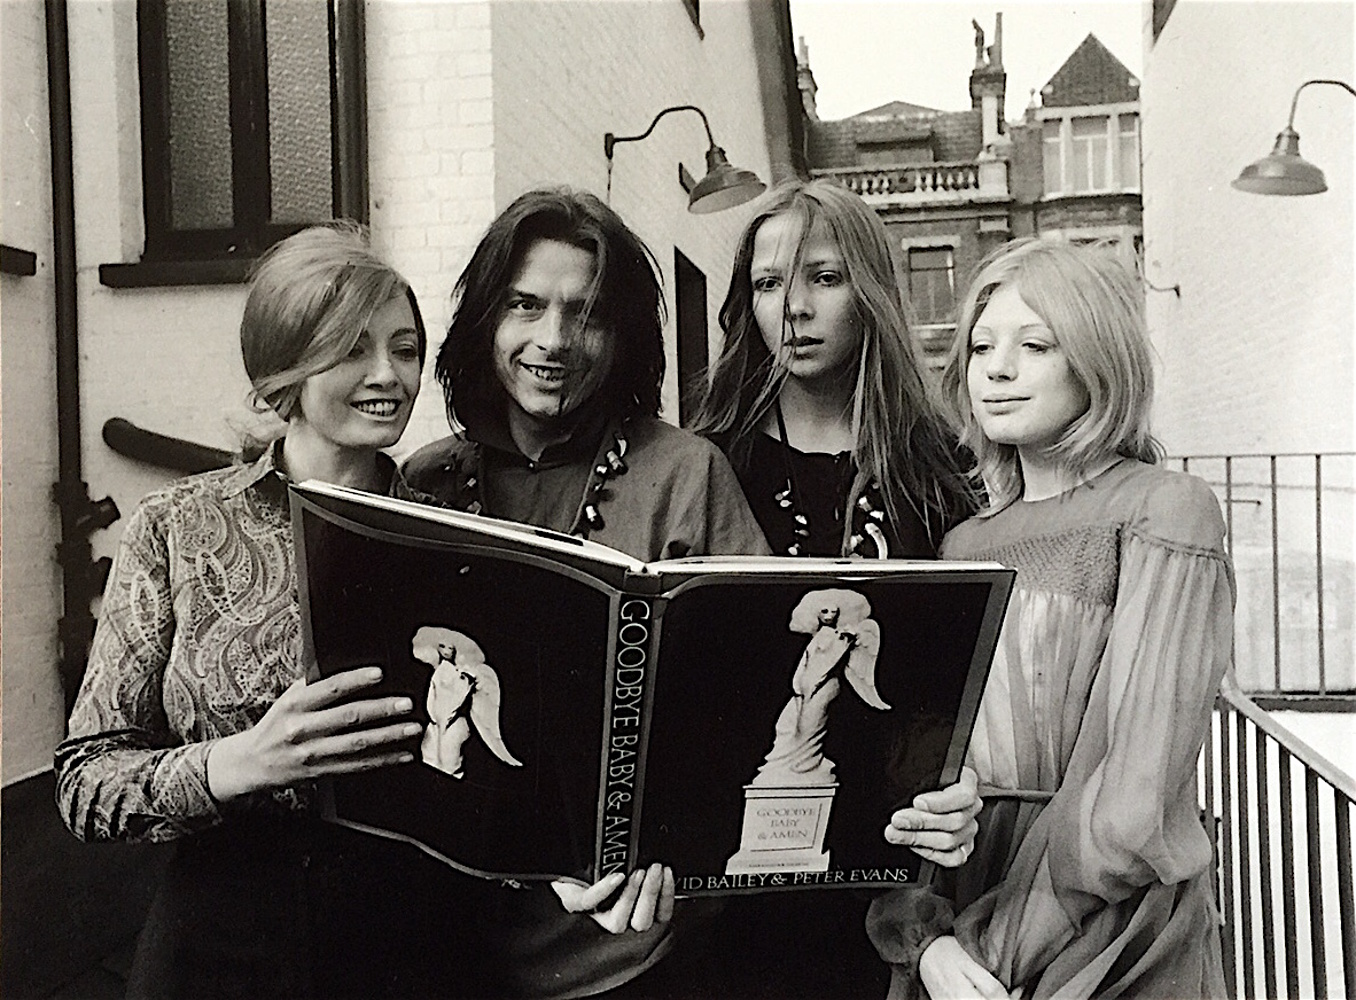 Christine Keeler, David Bailey, Penelope Tree and Marianne Faithful / 1969